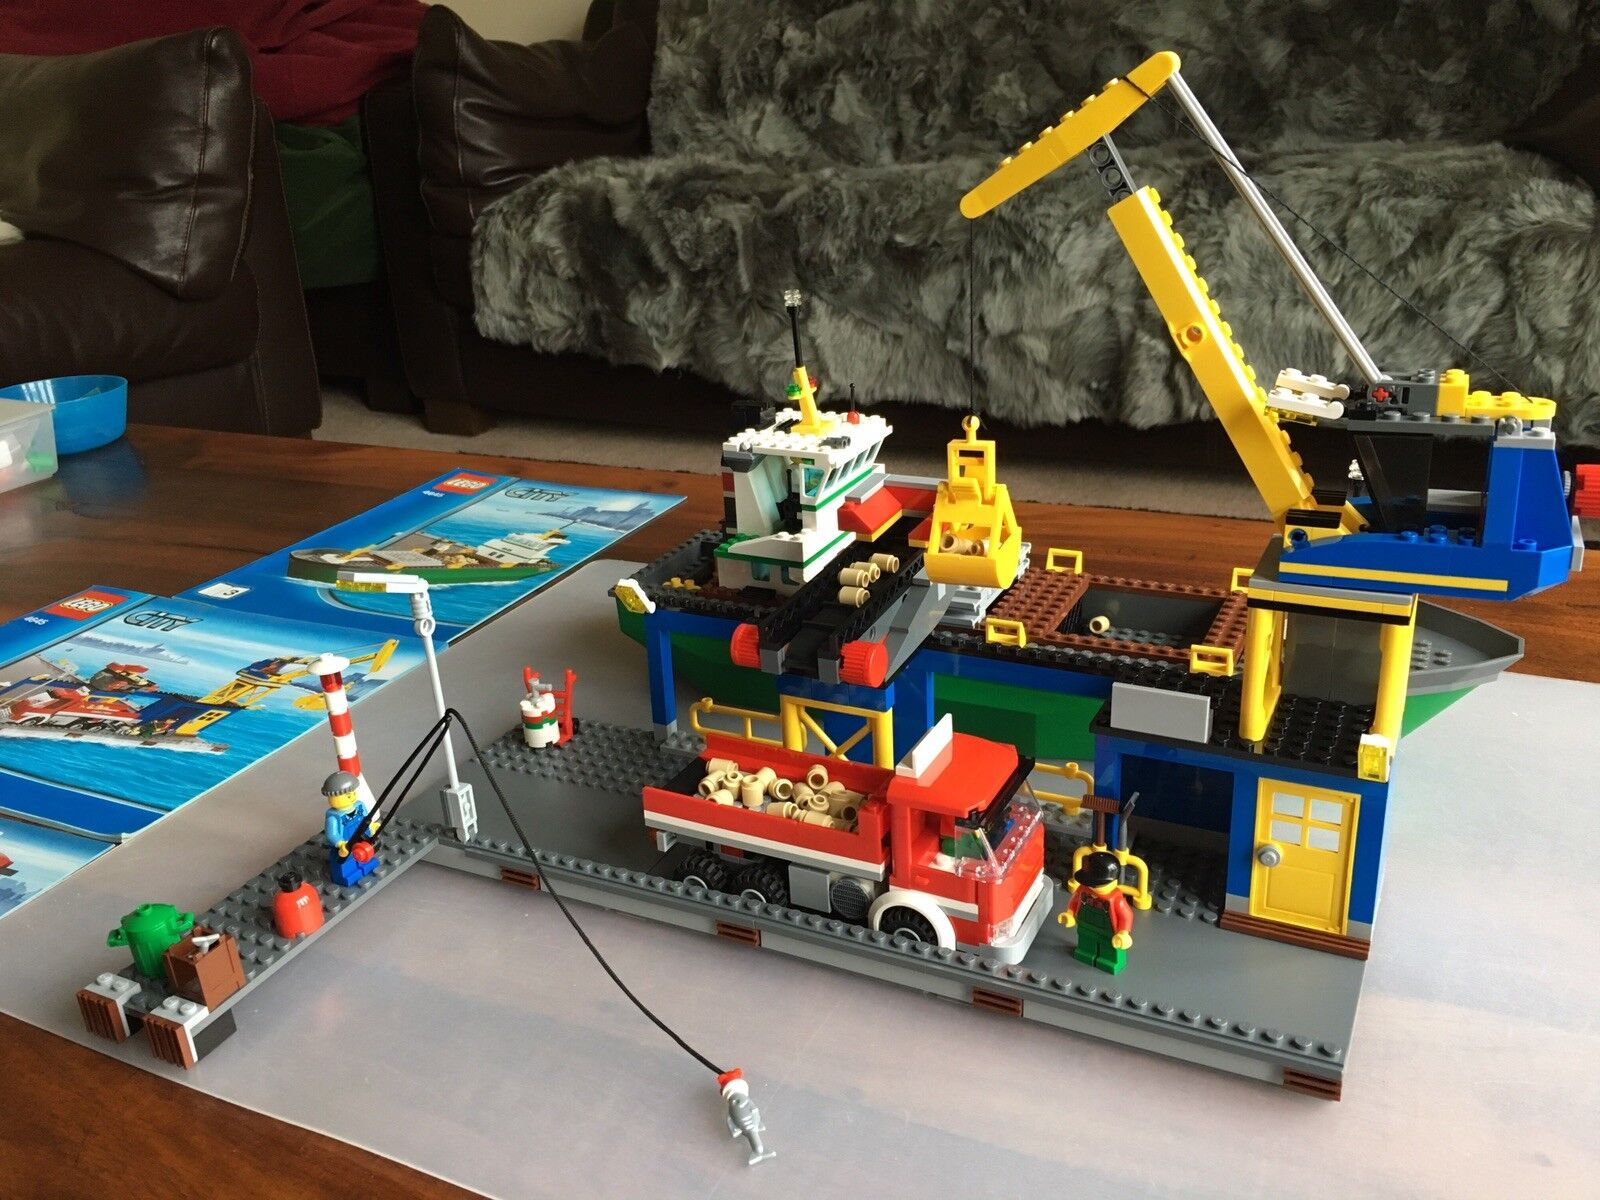 Lego 4645 - City - Harbour - Pre owned - 100% complete.